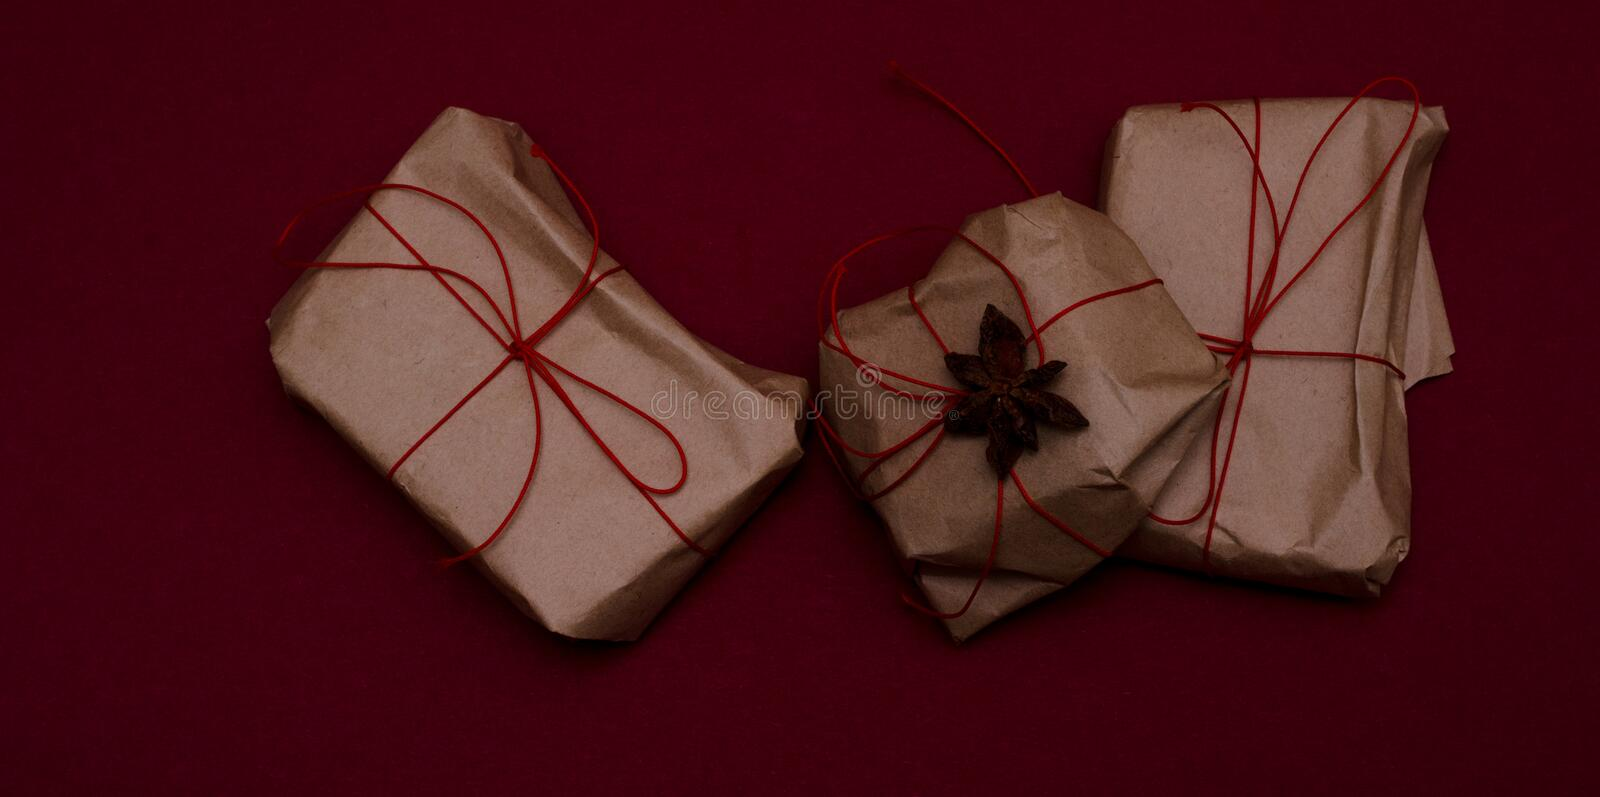 Simple handmade wrapped gifts stock photography